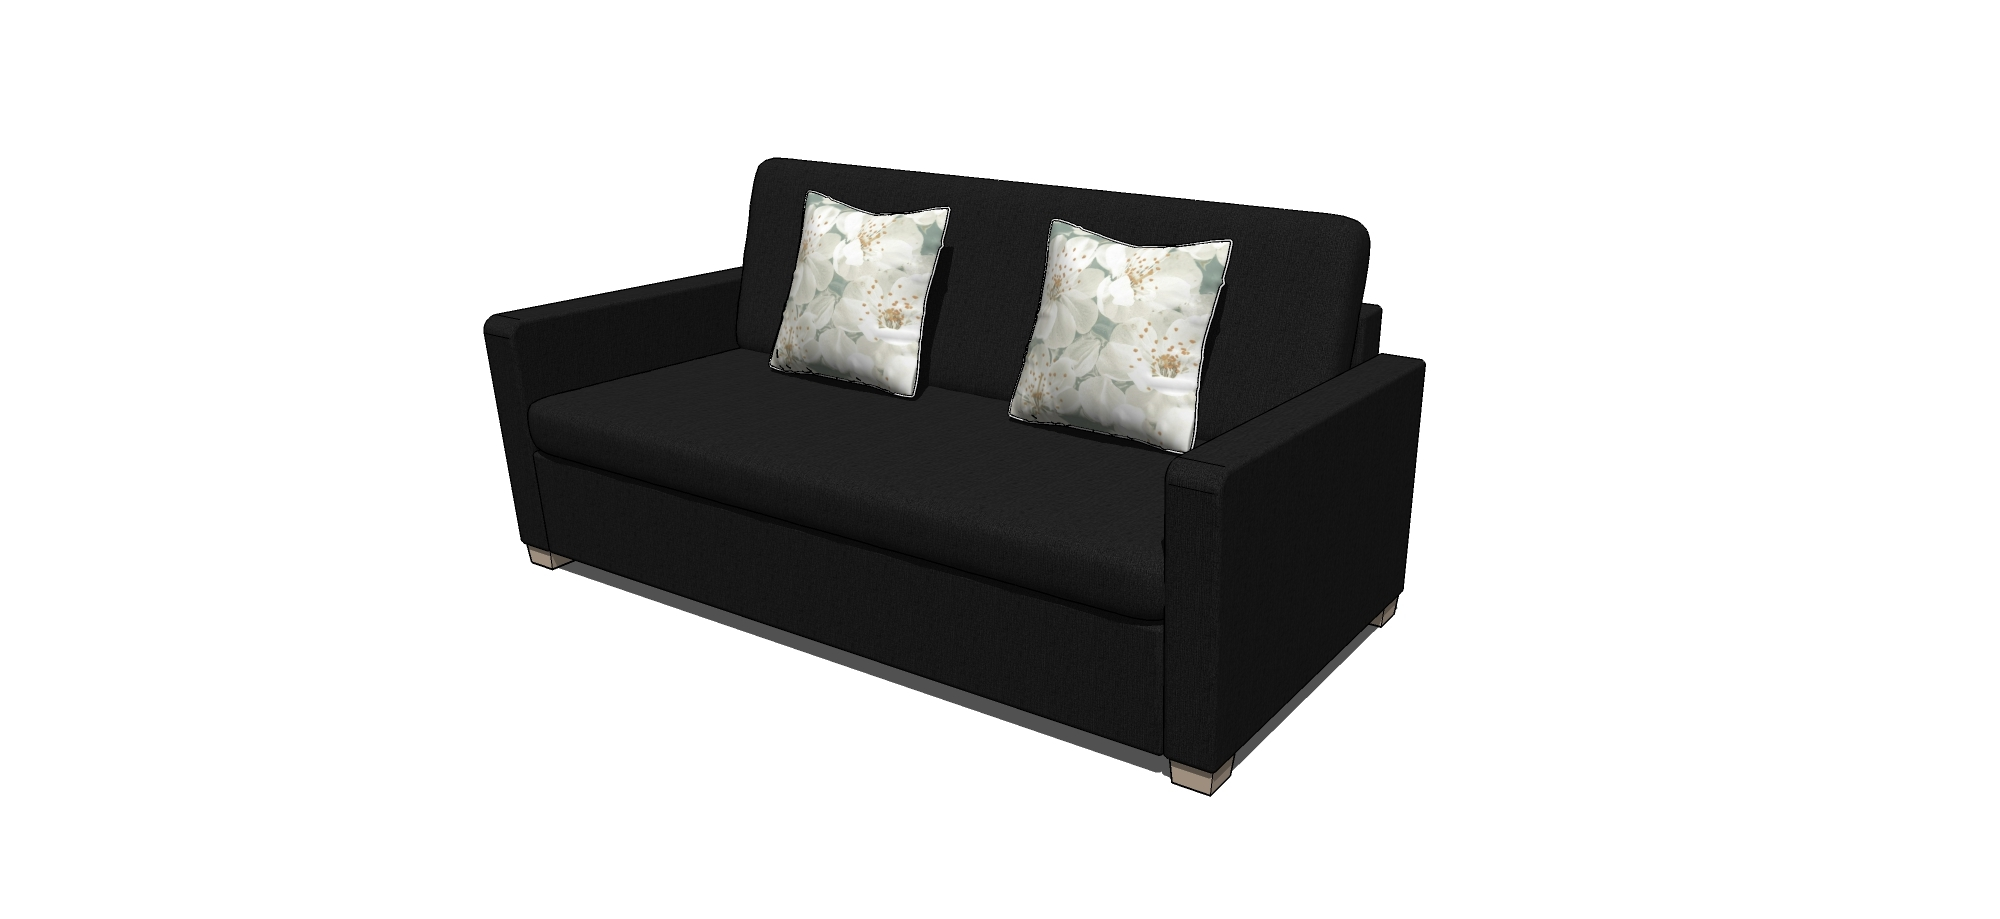 Remarkable Ikea Solsta Sofa Caraccident5 Cool Chair Designs And Ideas Caraccident5Info